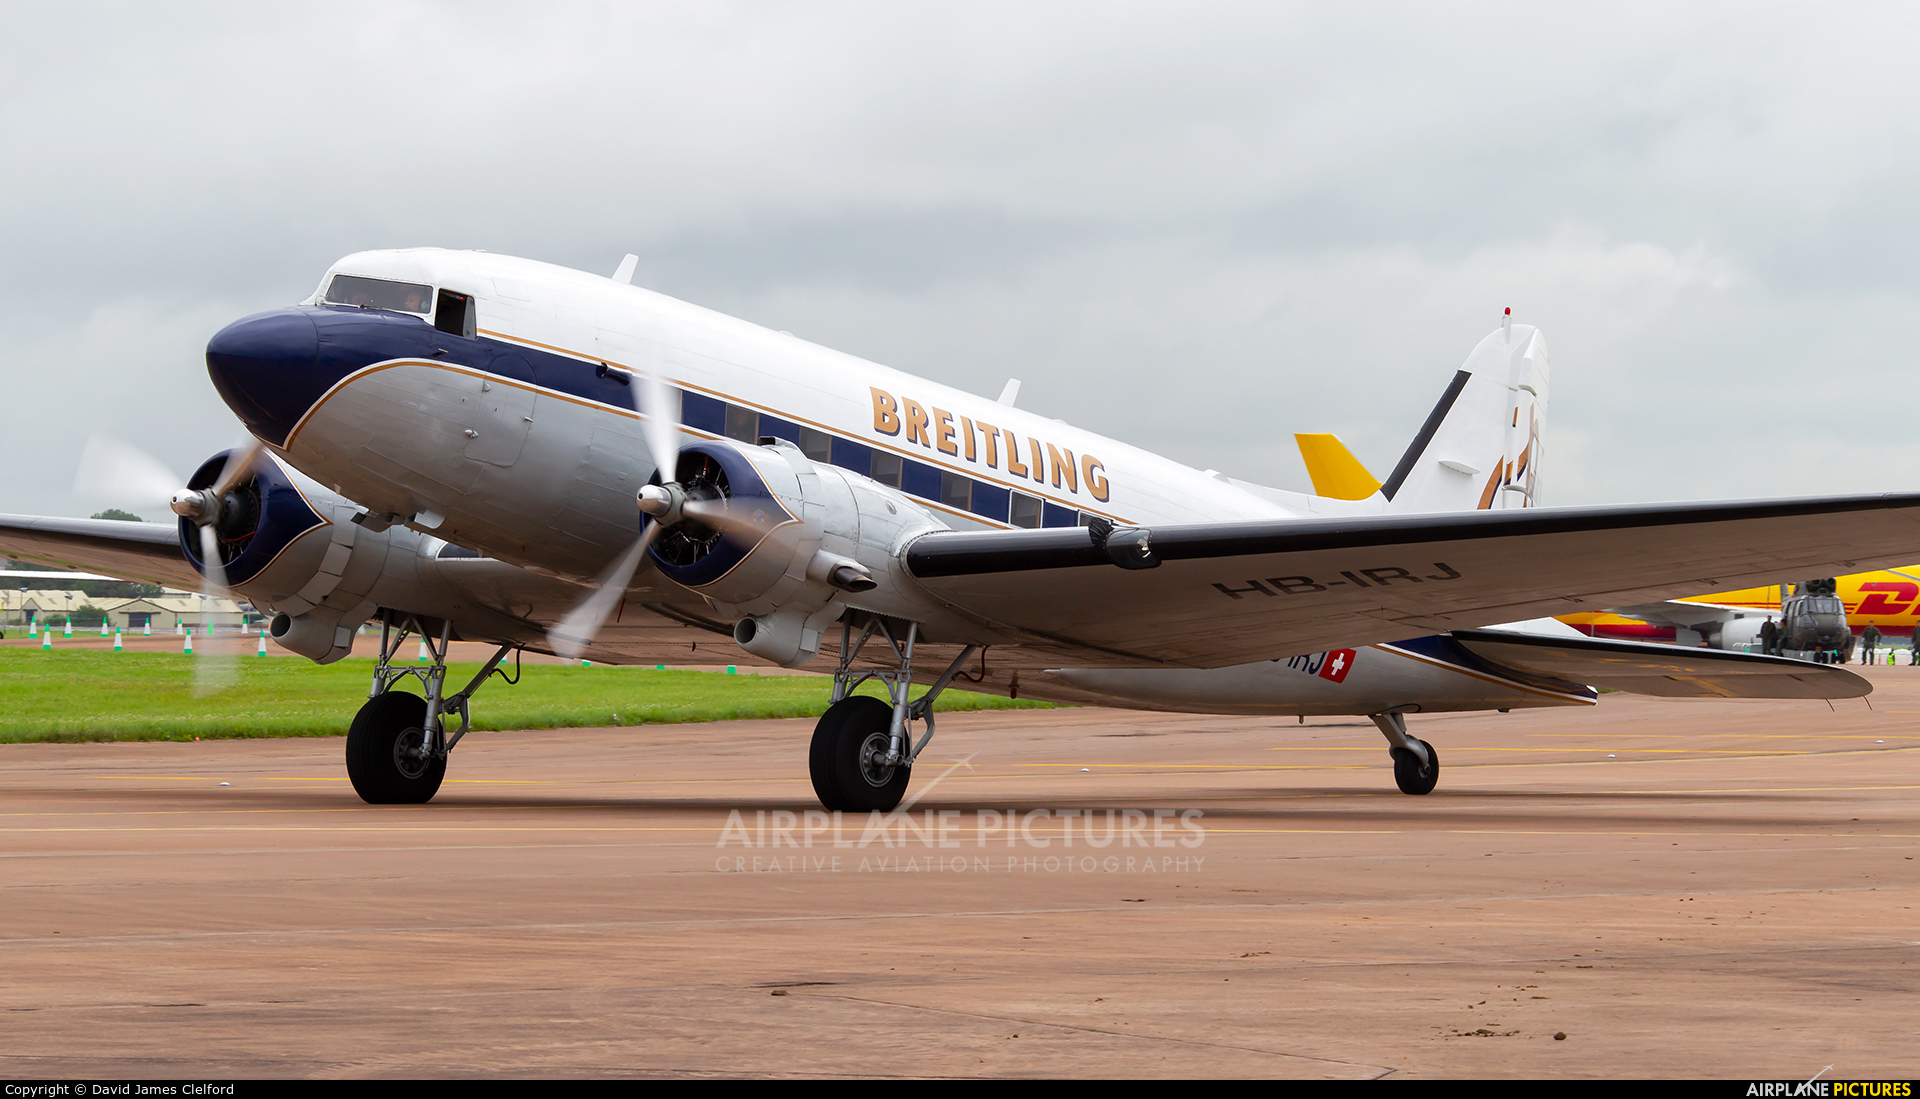 Breitling HB-IRJ aircraft at Fairford